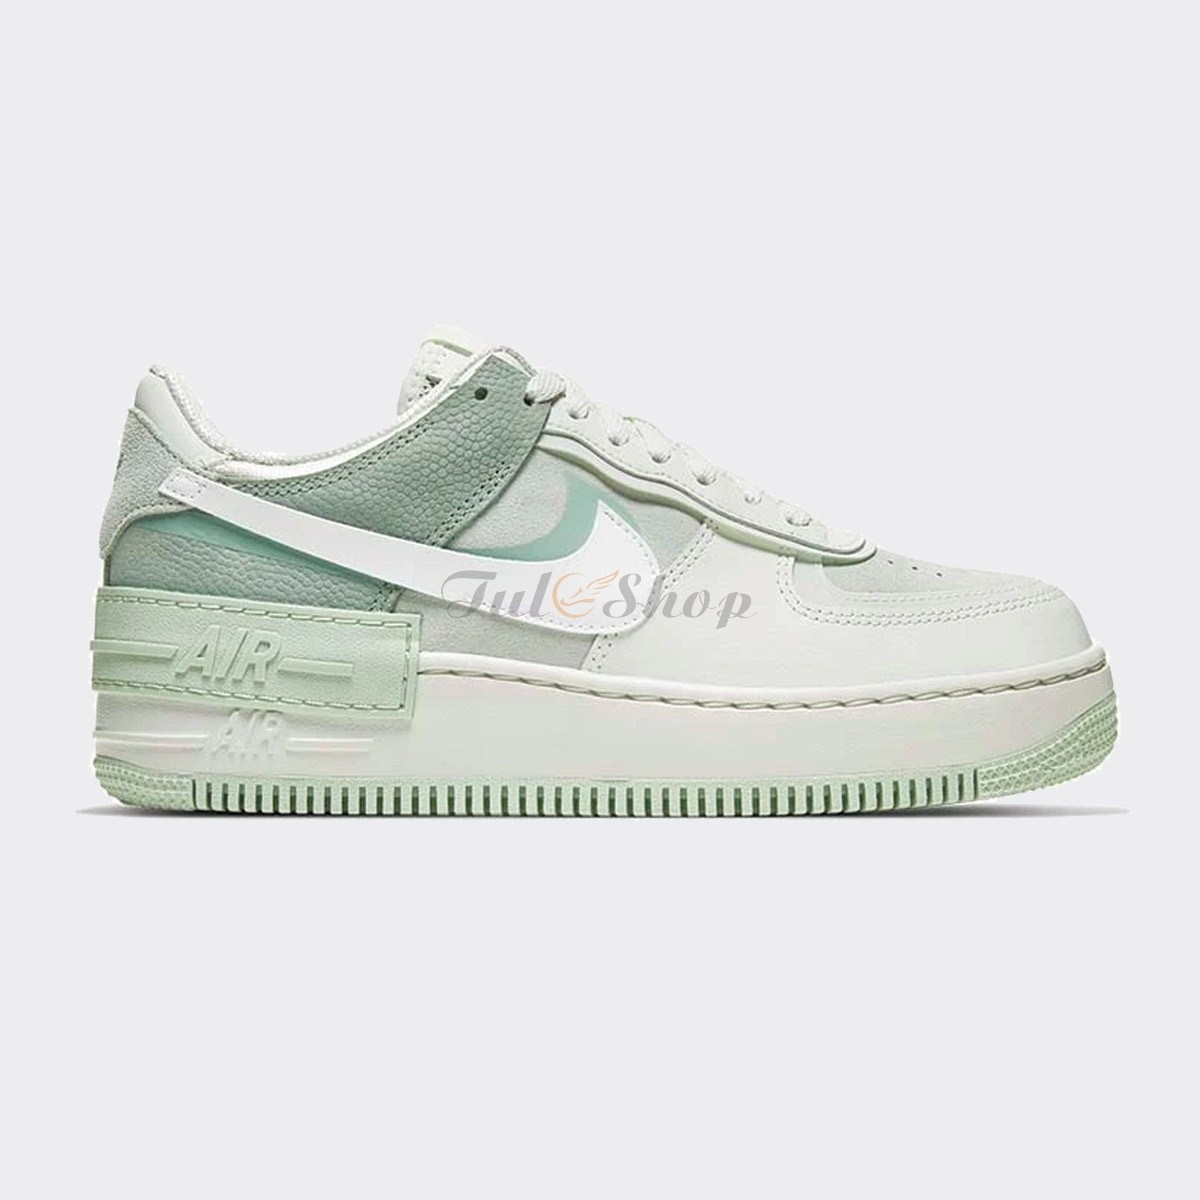 Giay Nike Air Force 1 Shadow Pure Aura Green Xanh La Nam Nữ And while tonal pairs have secured bruce kilgore's 1982 design a spot within th. giay nike air force 1 shadow pure aura green xanh la nam nữ